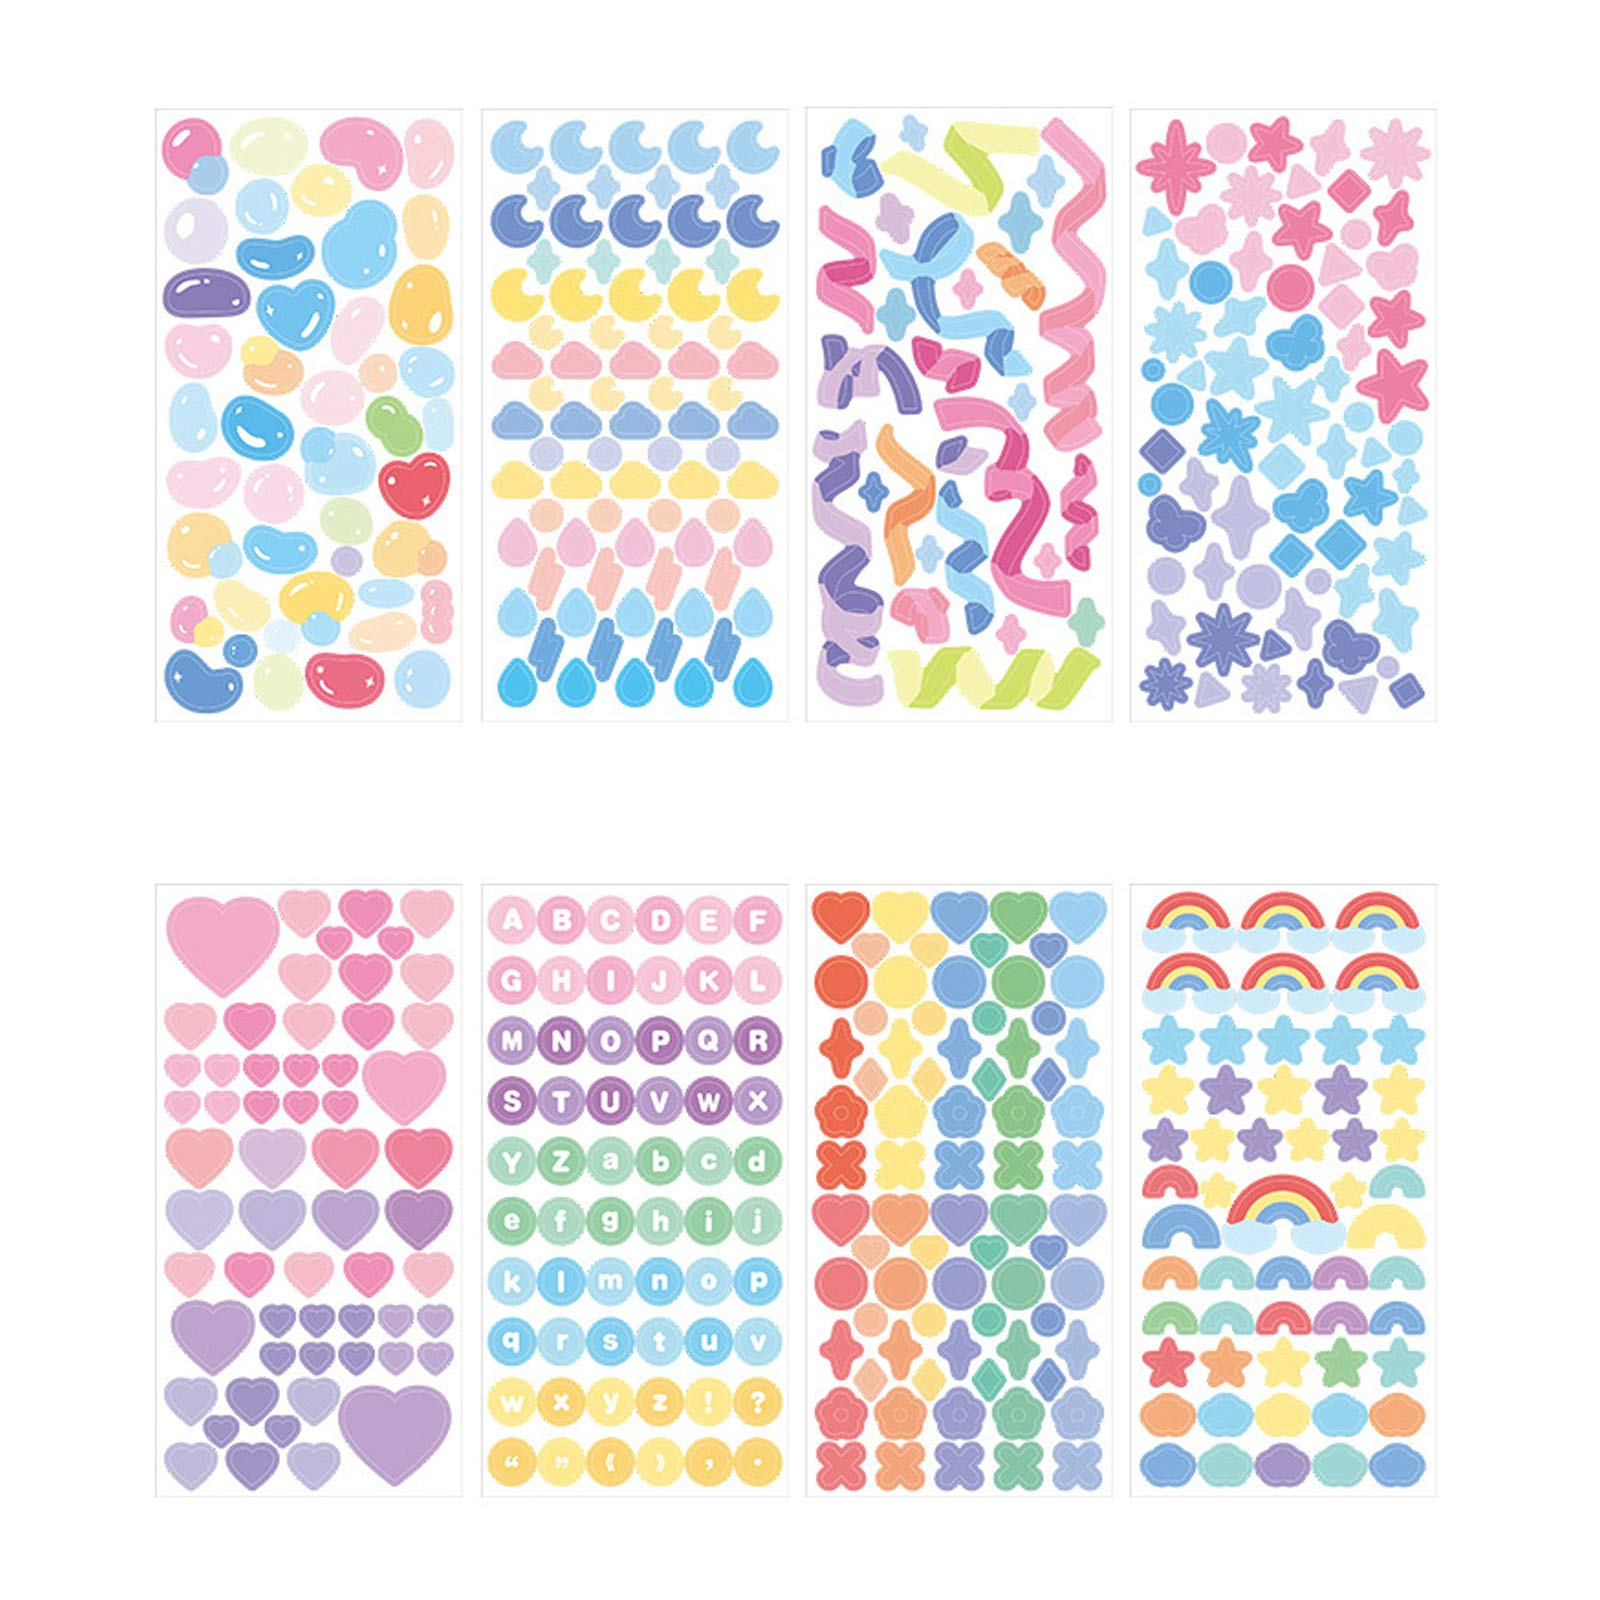 DENALY 8 Sheets Hyun-chae Letter Alphabet Sticker Self Adhesive Love Stickers for Arts Craft Greeting Cards Scrap Books Home Decoration DIY Deco Stickers (Sticker-8 Style)